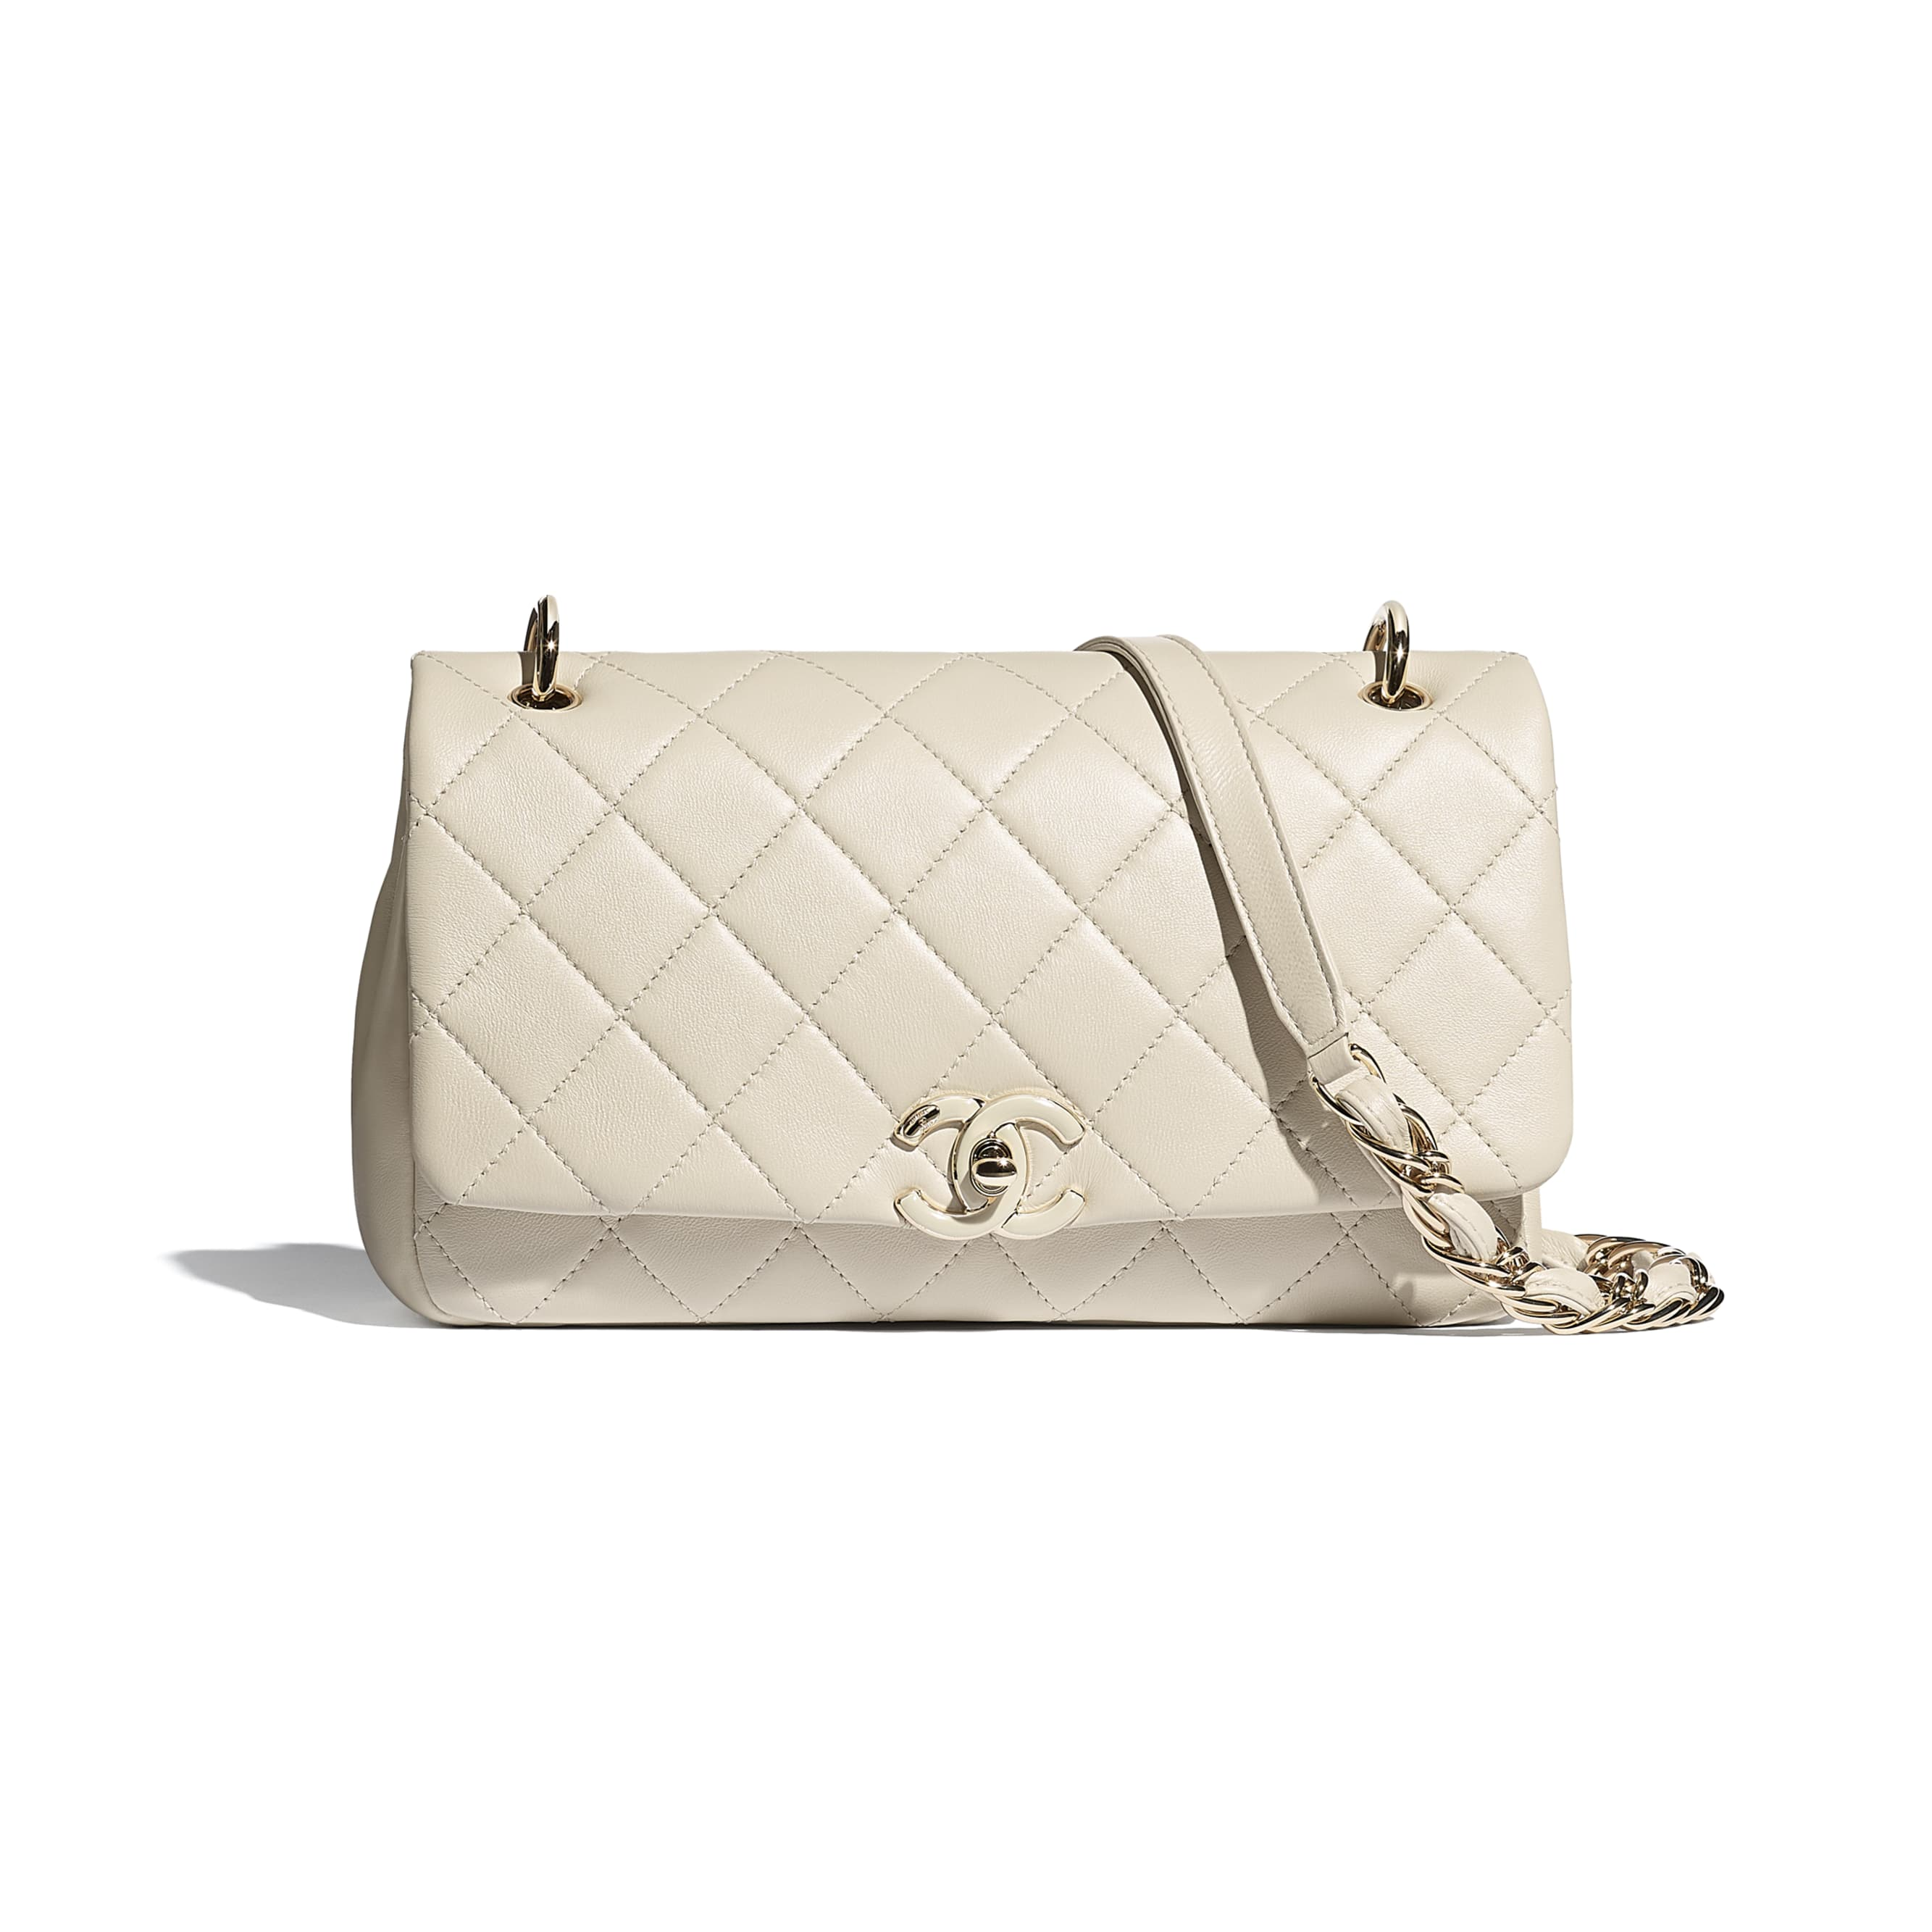 Large Flap Bag - Beige - Lambskin - CHANEL - Default view - see standard sized version